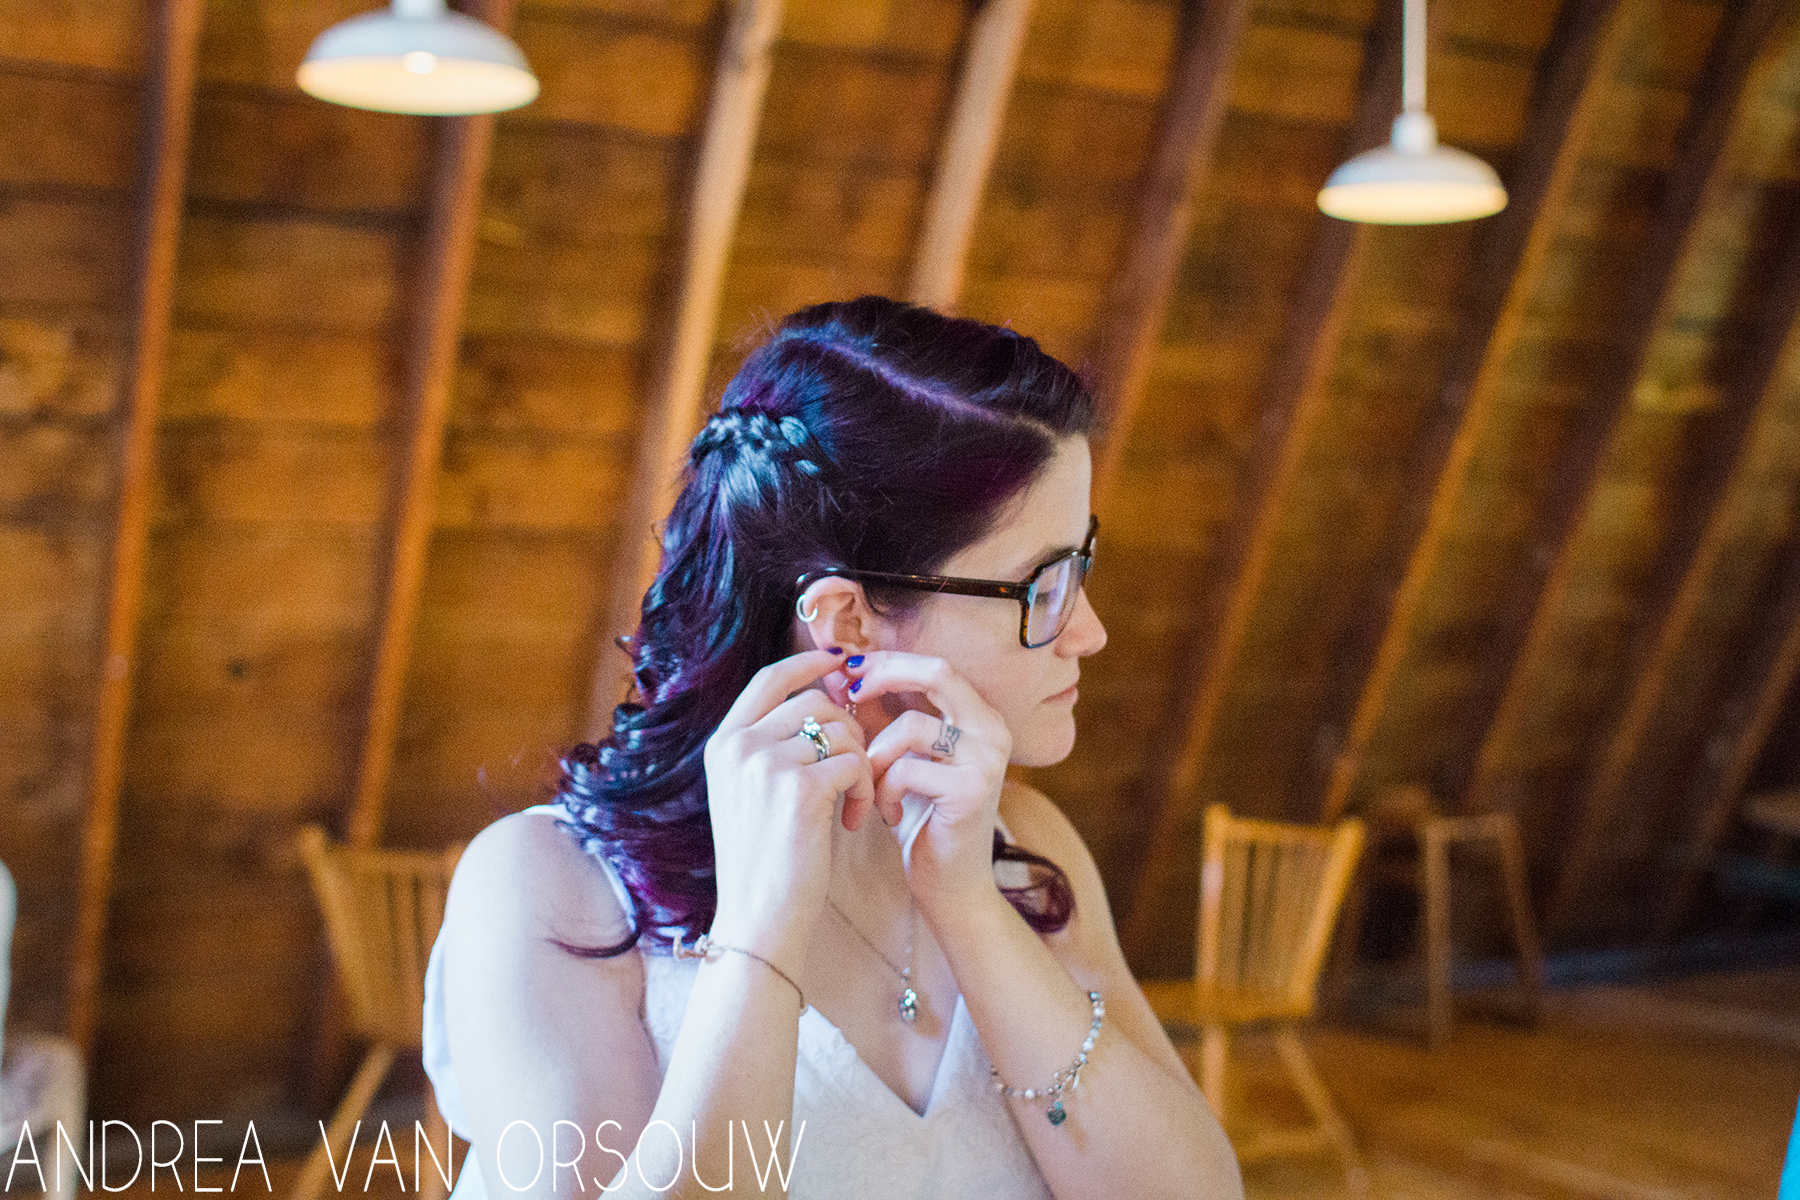 PURPLE__HAIR_WEDDING_CONNECTICUT_PHOTOGRAPHER.JPG